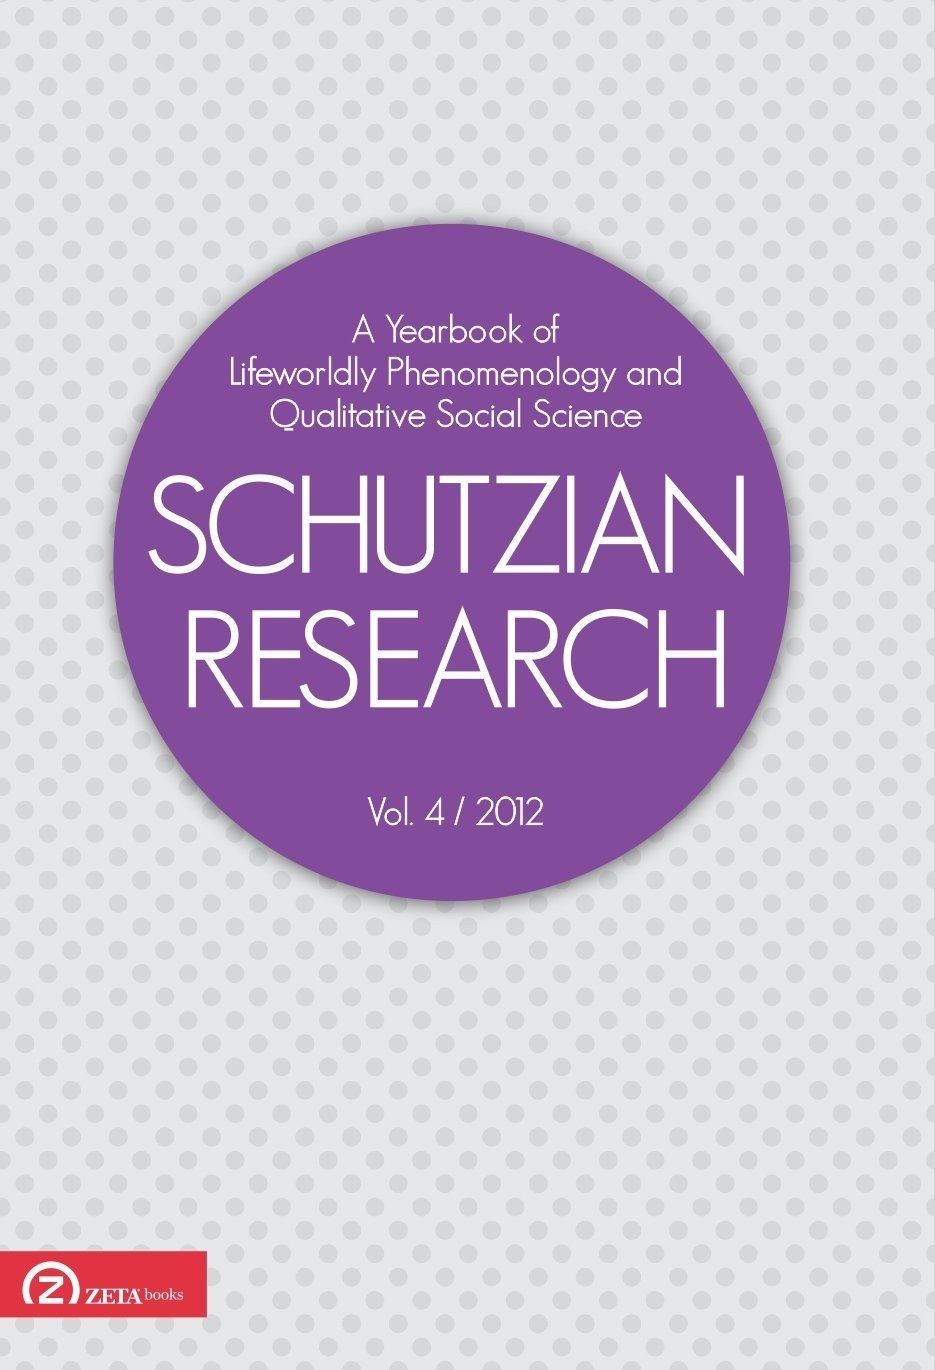 Download Schutzian Research. A Yearbook of Lifeworldly Phenomenology and Qualitative Social Science, v. 4/2012 ebook